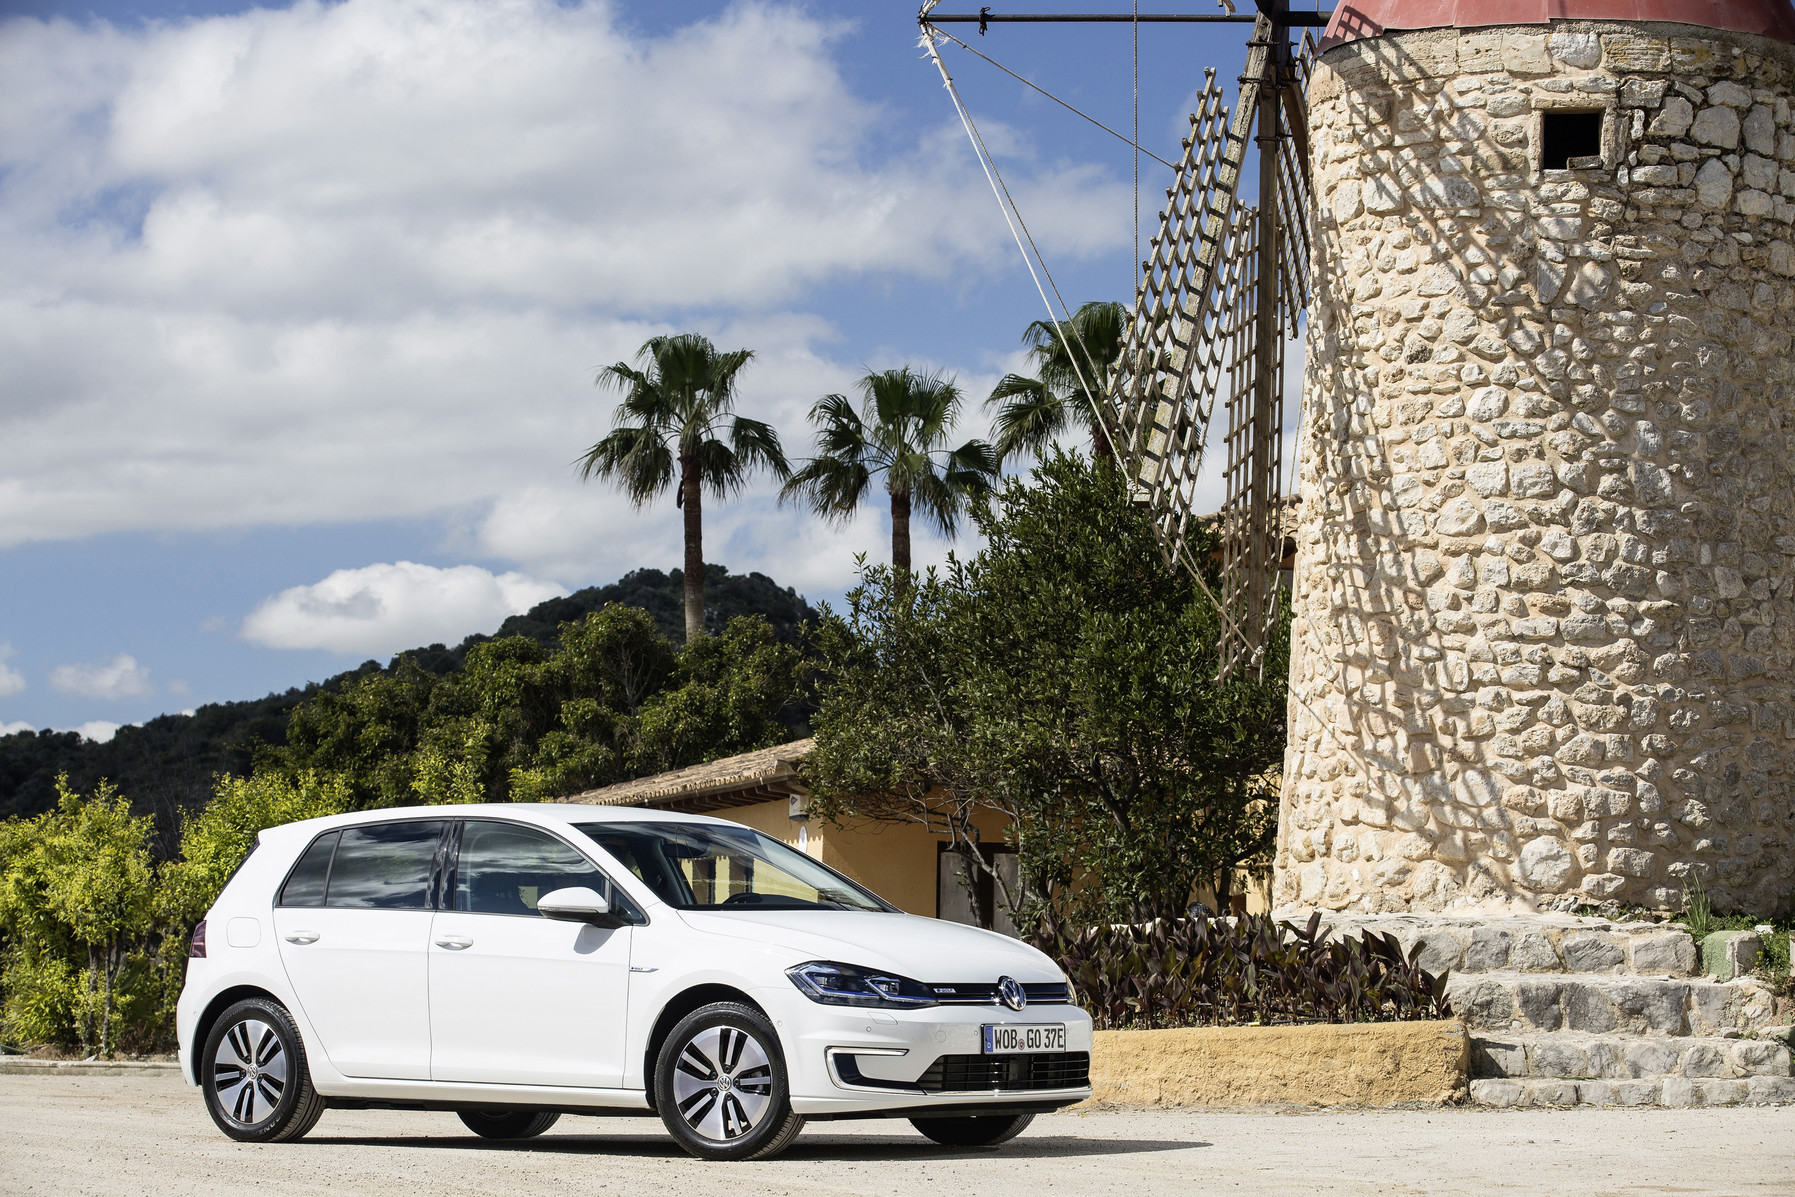 The Volkswagen e-Golf has the regular Golf's good looks, but produces no emissions from a tailpipe